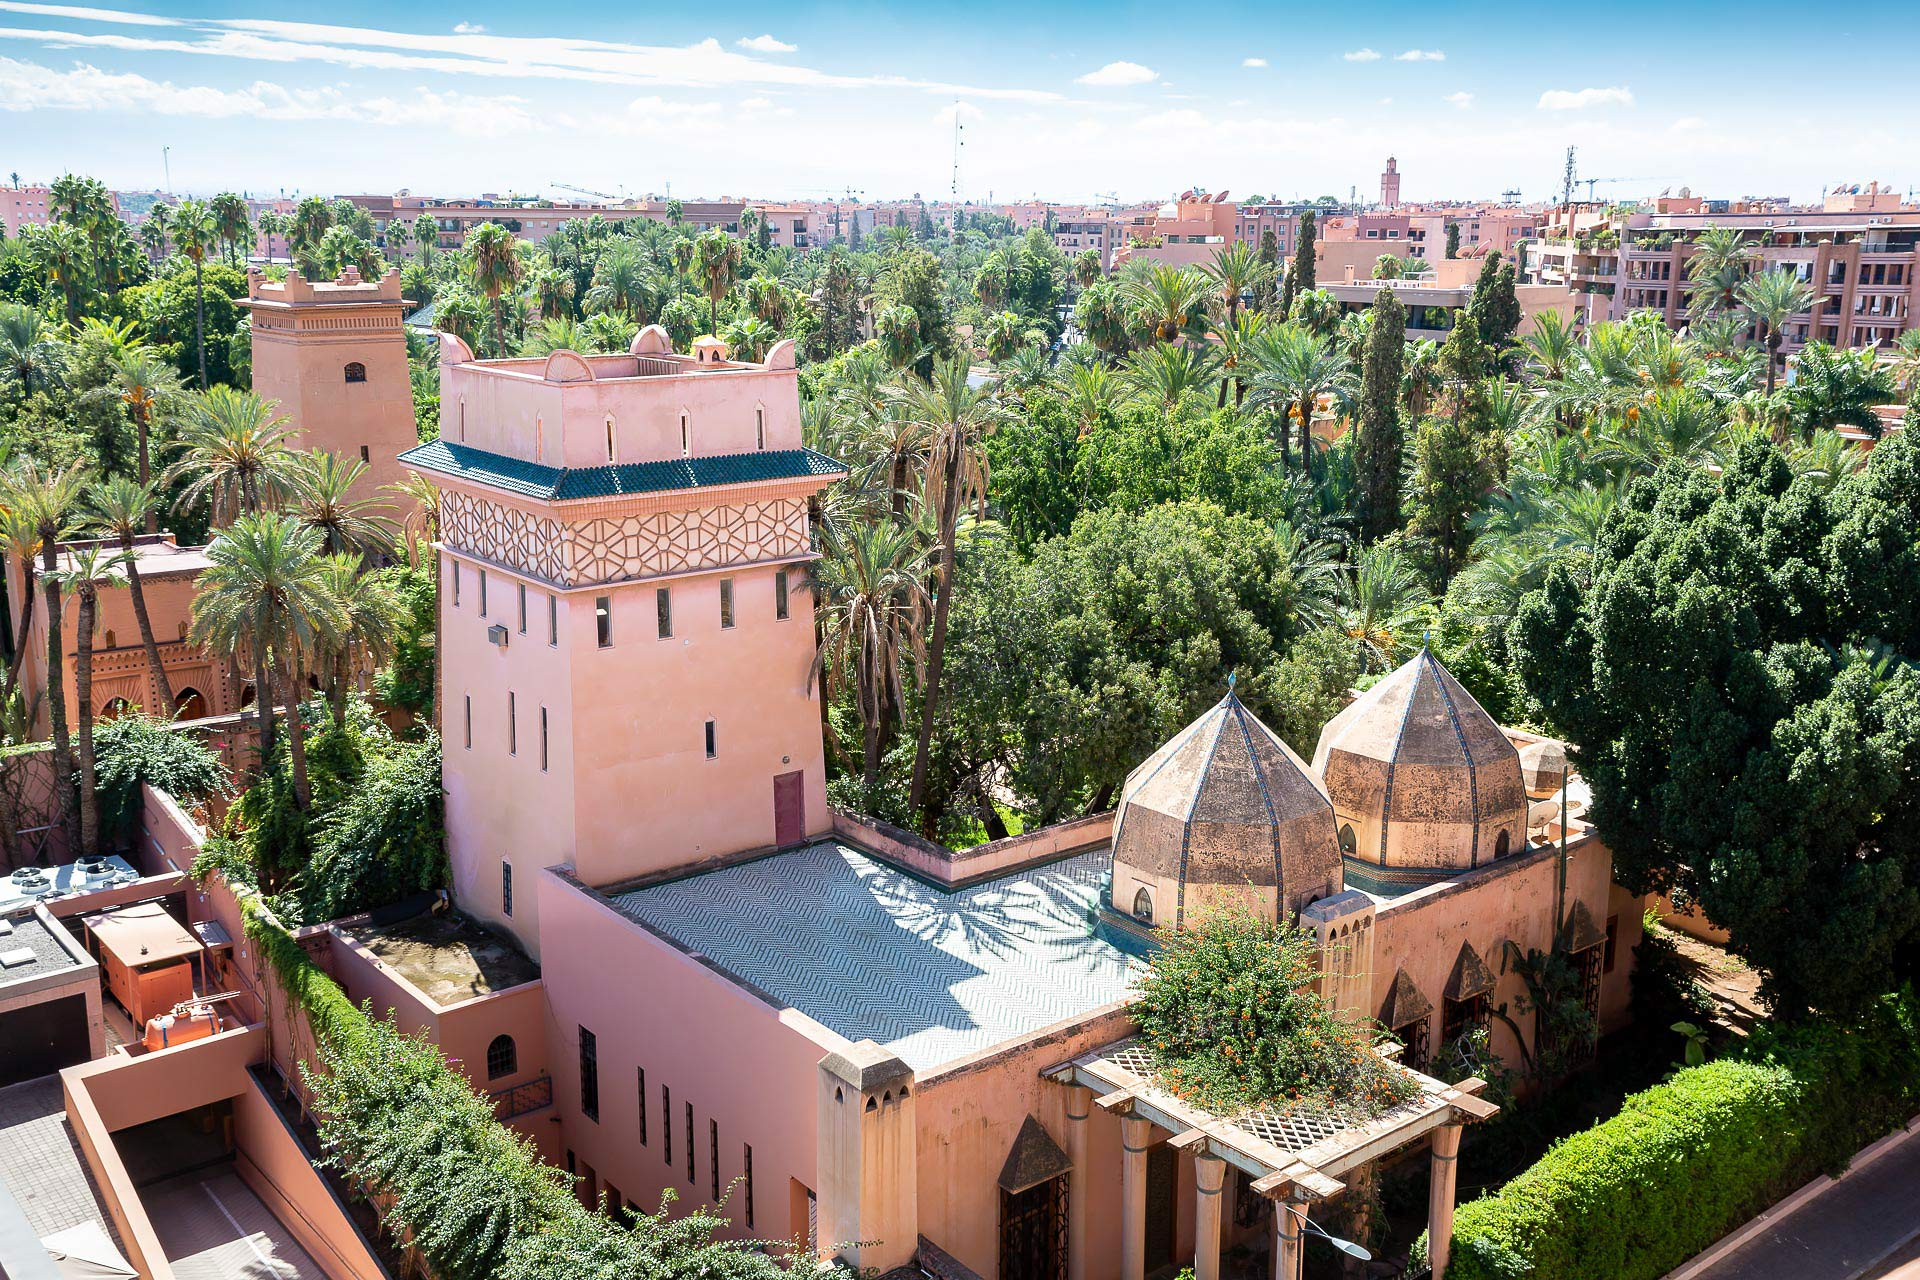 MUSEE_YSL_MARRAKECH_J.CRESP_HD-55